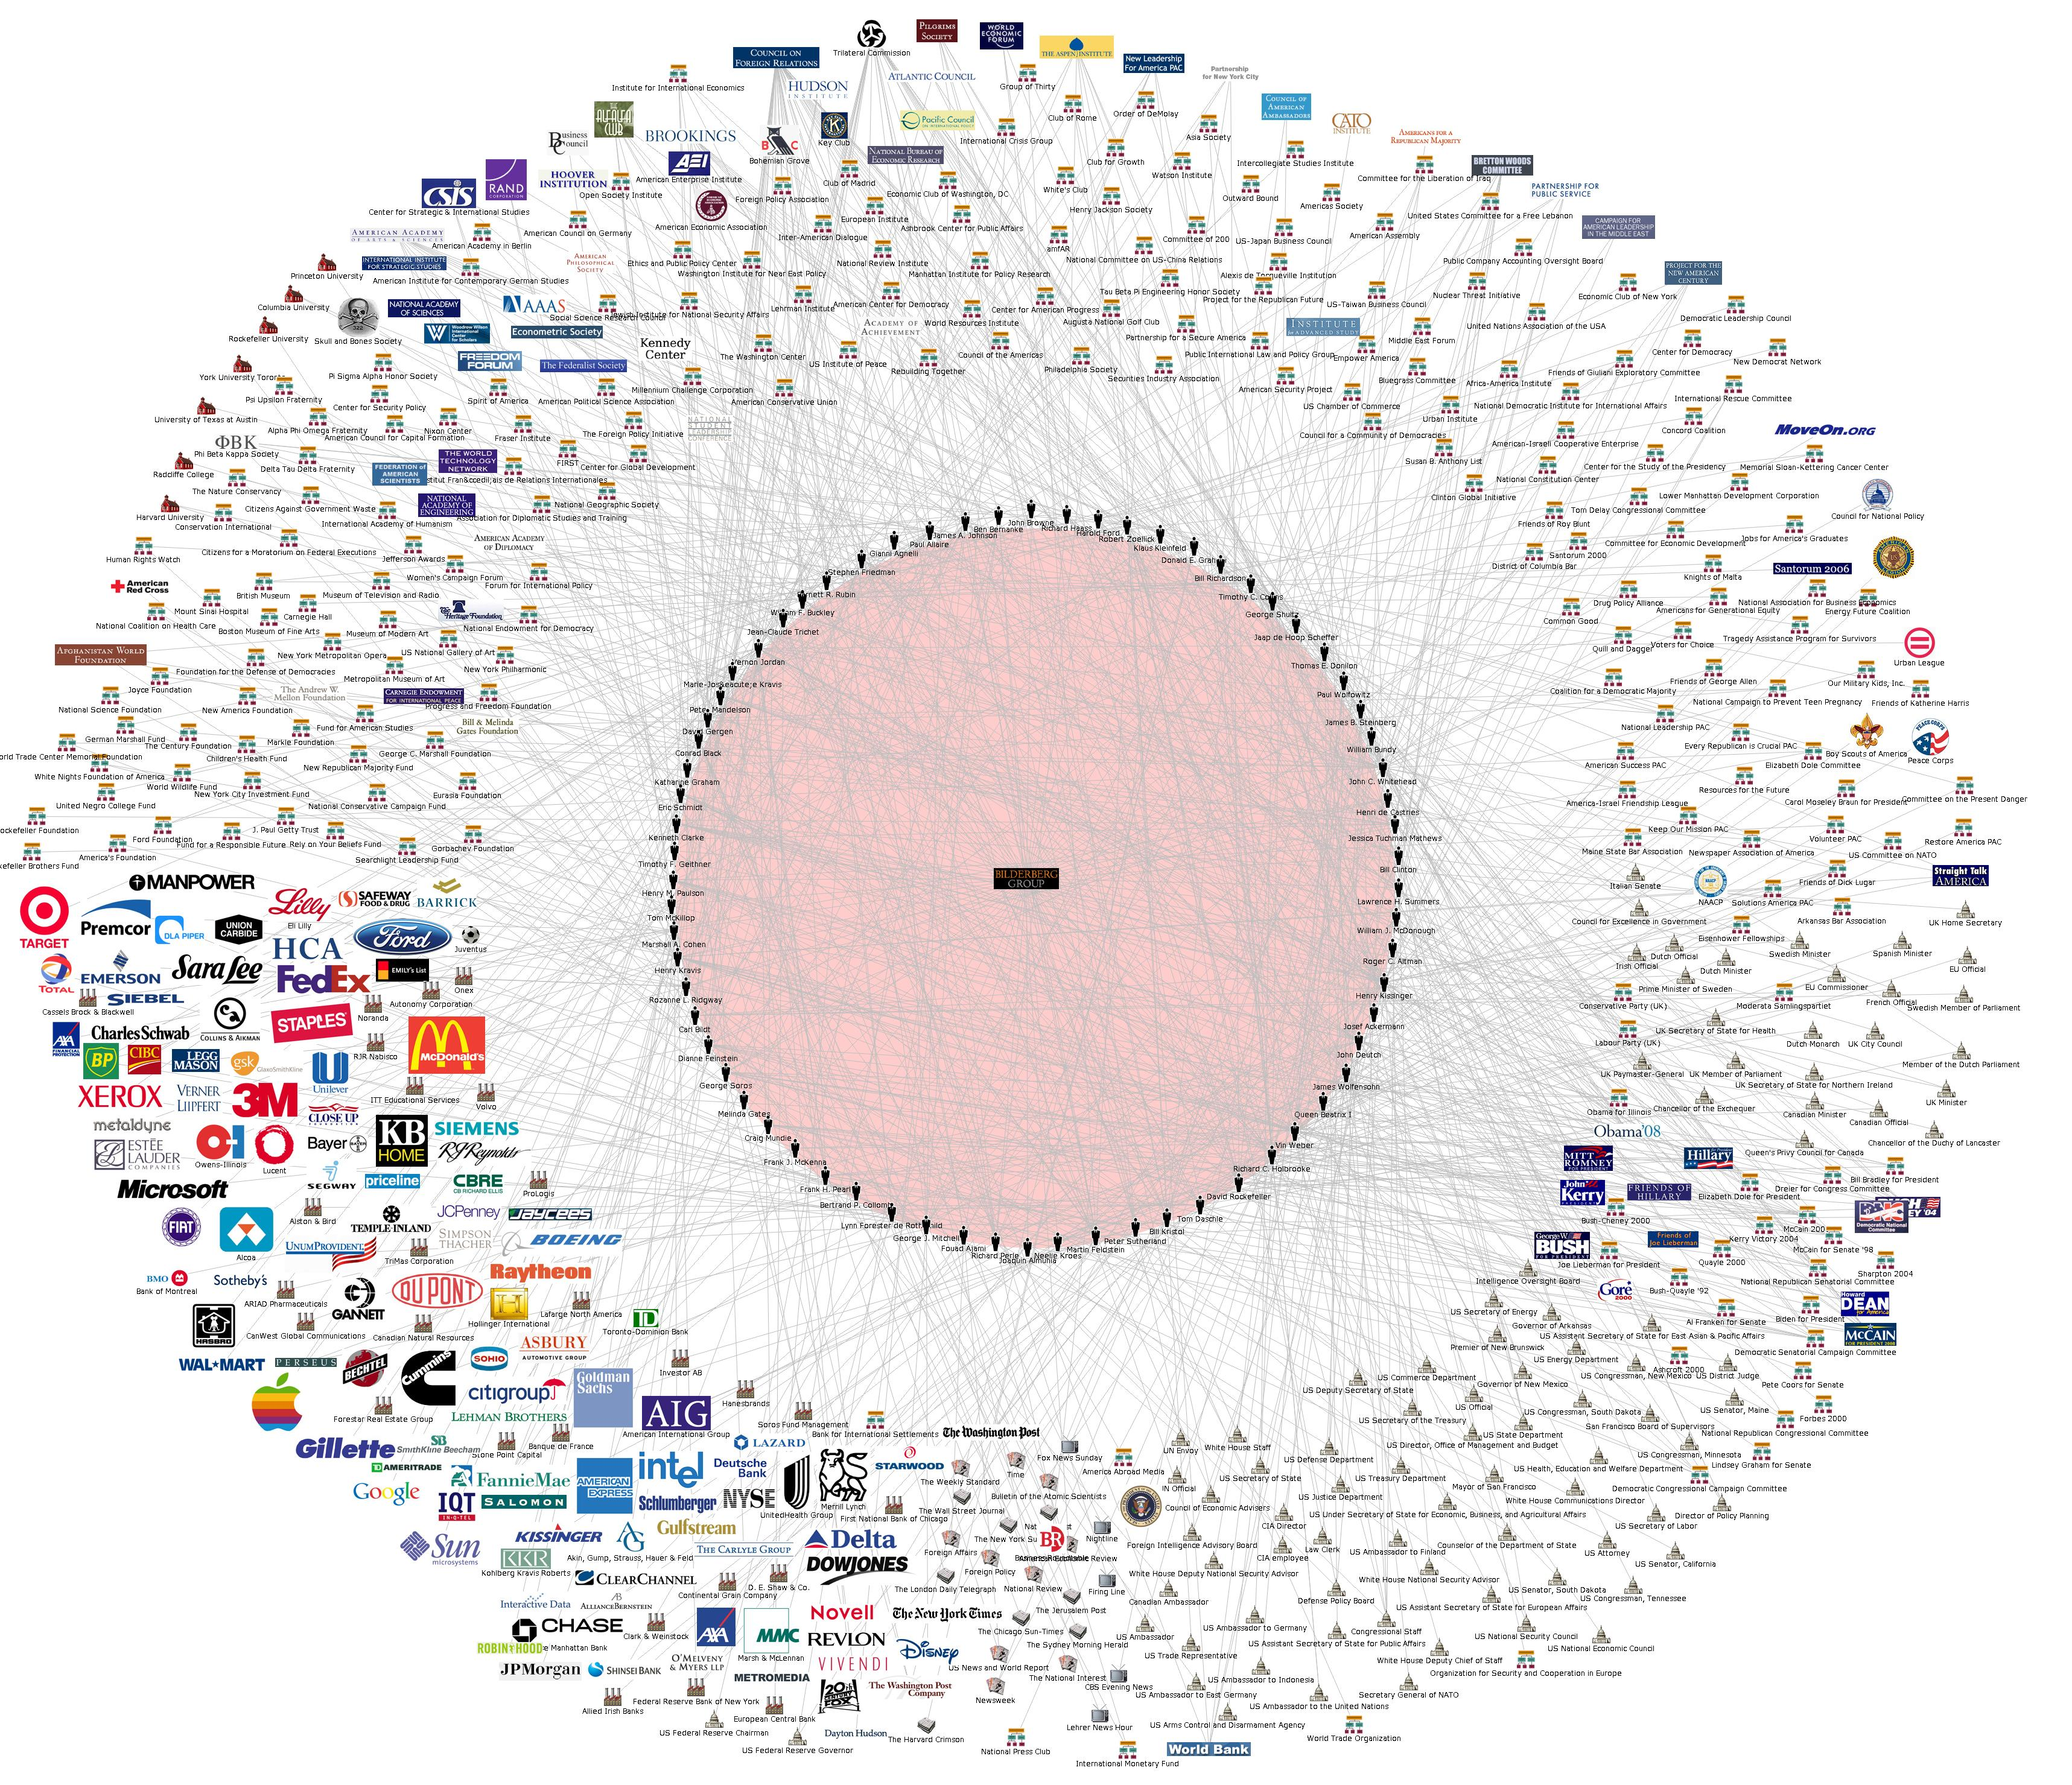 bilderberg connections core group